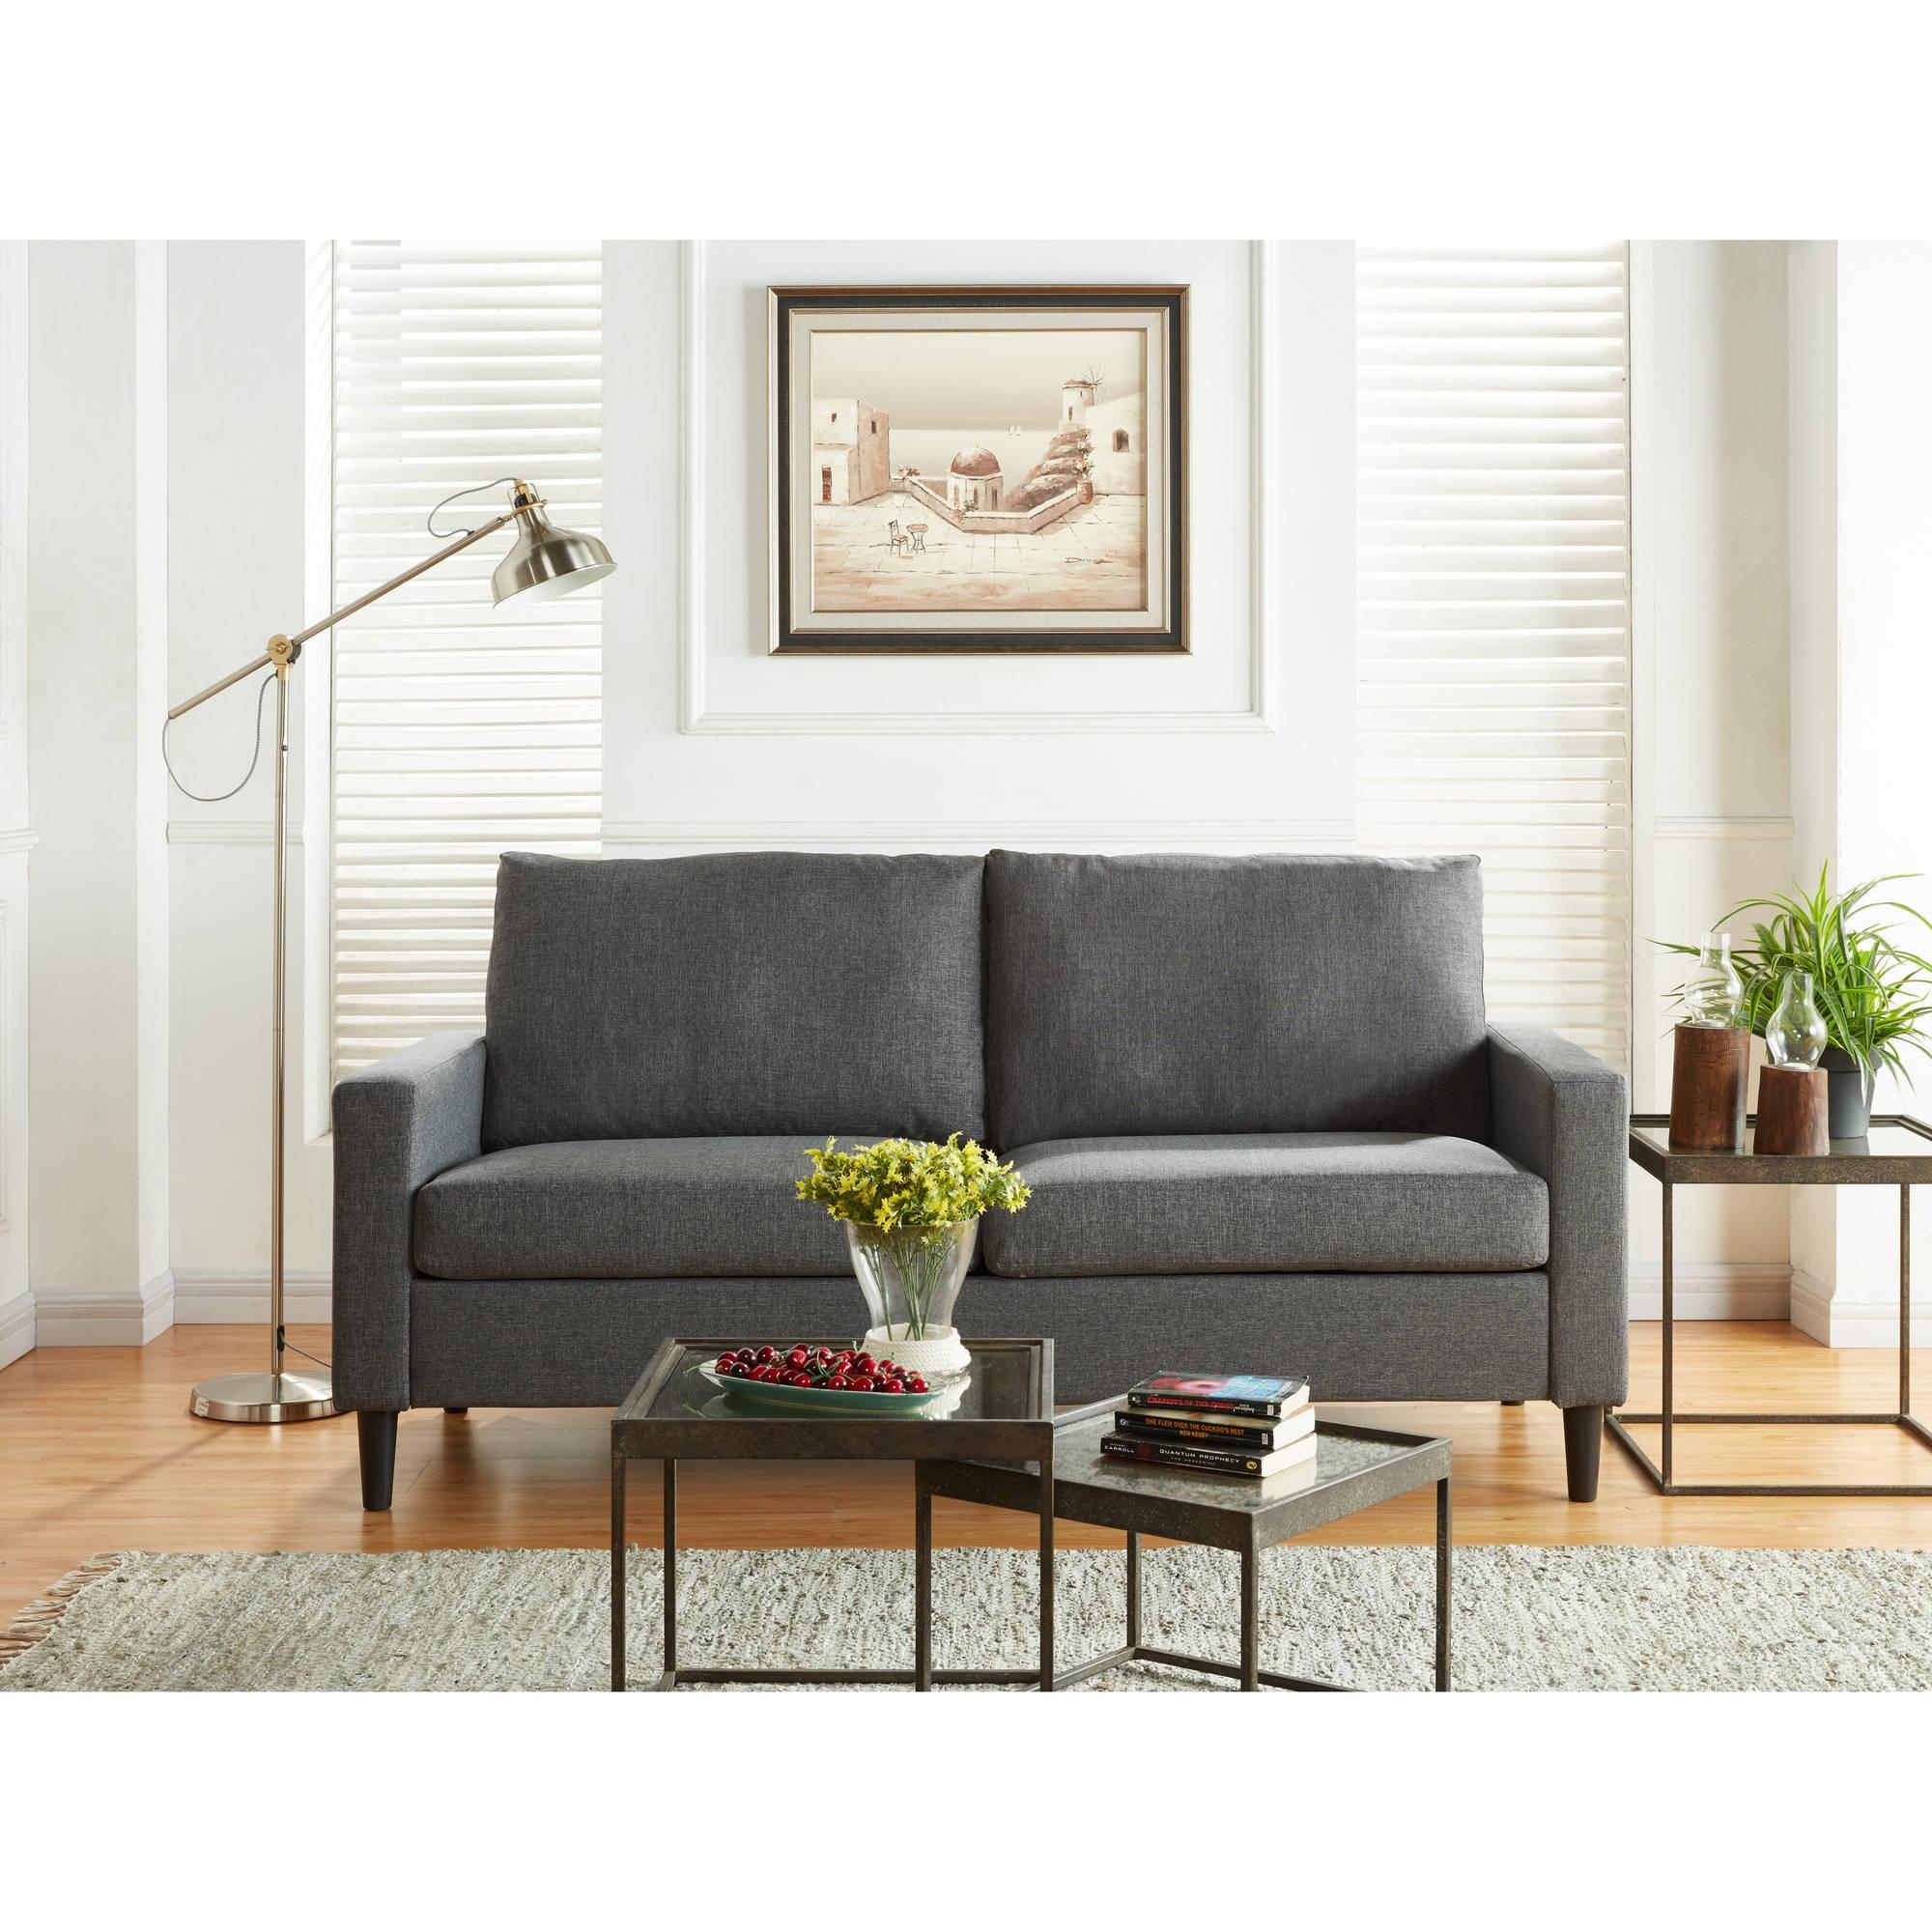 Sectional Sleeper Sofas Intended For Queen Sofa Sleeper Sectional Microfiber (Image 11 of 20)